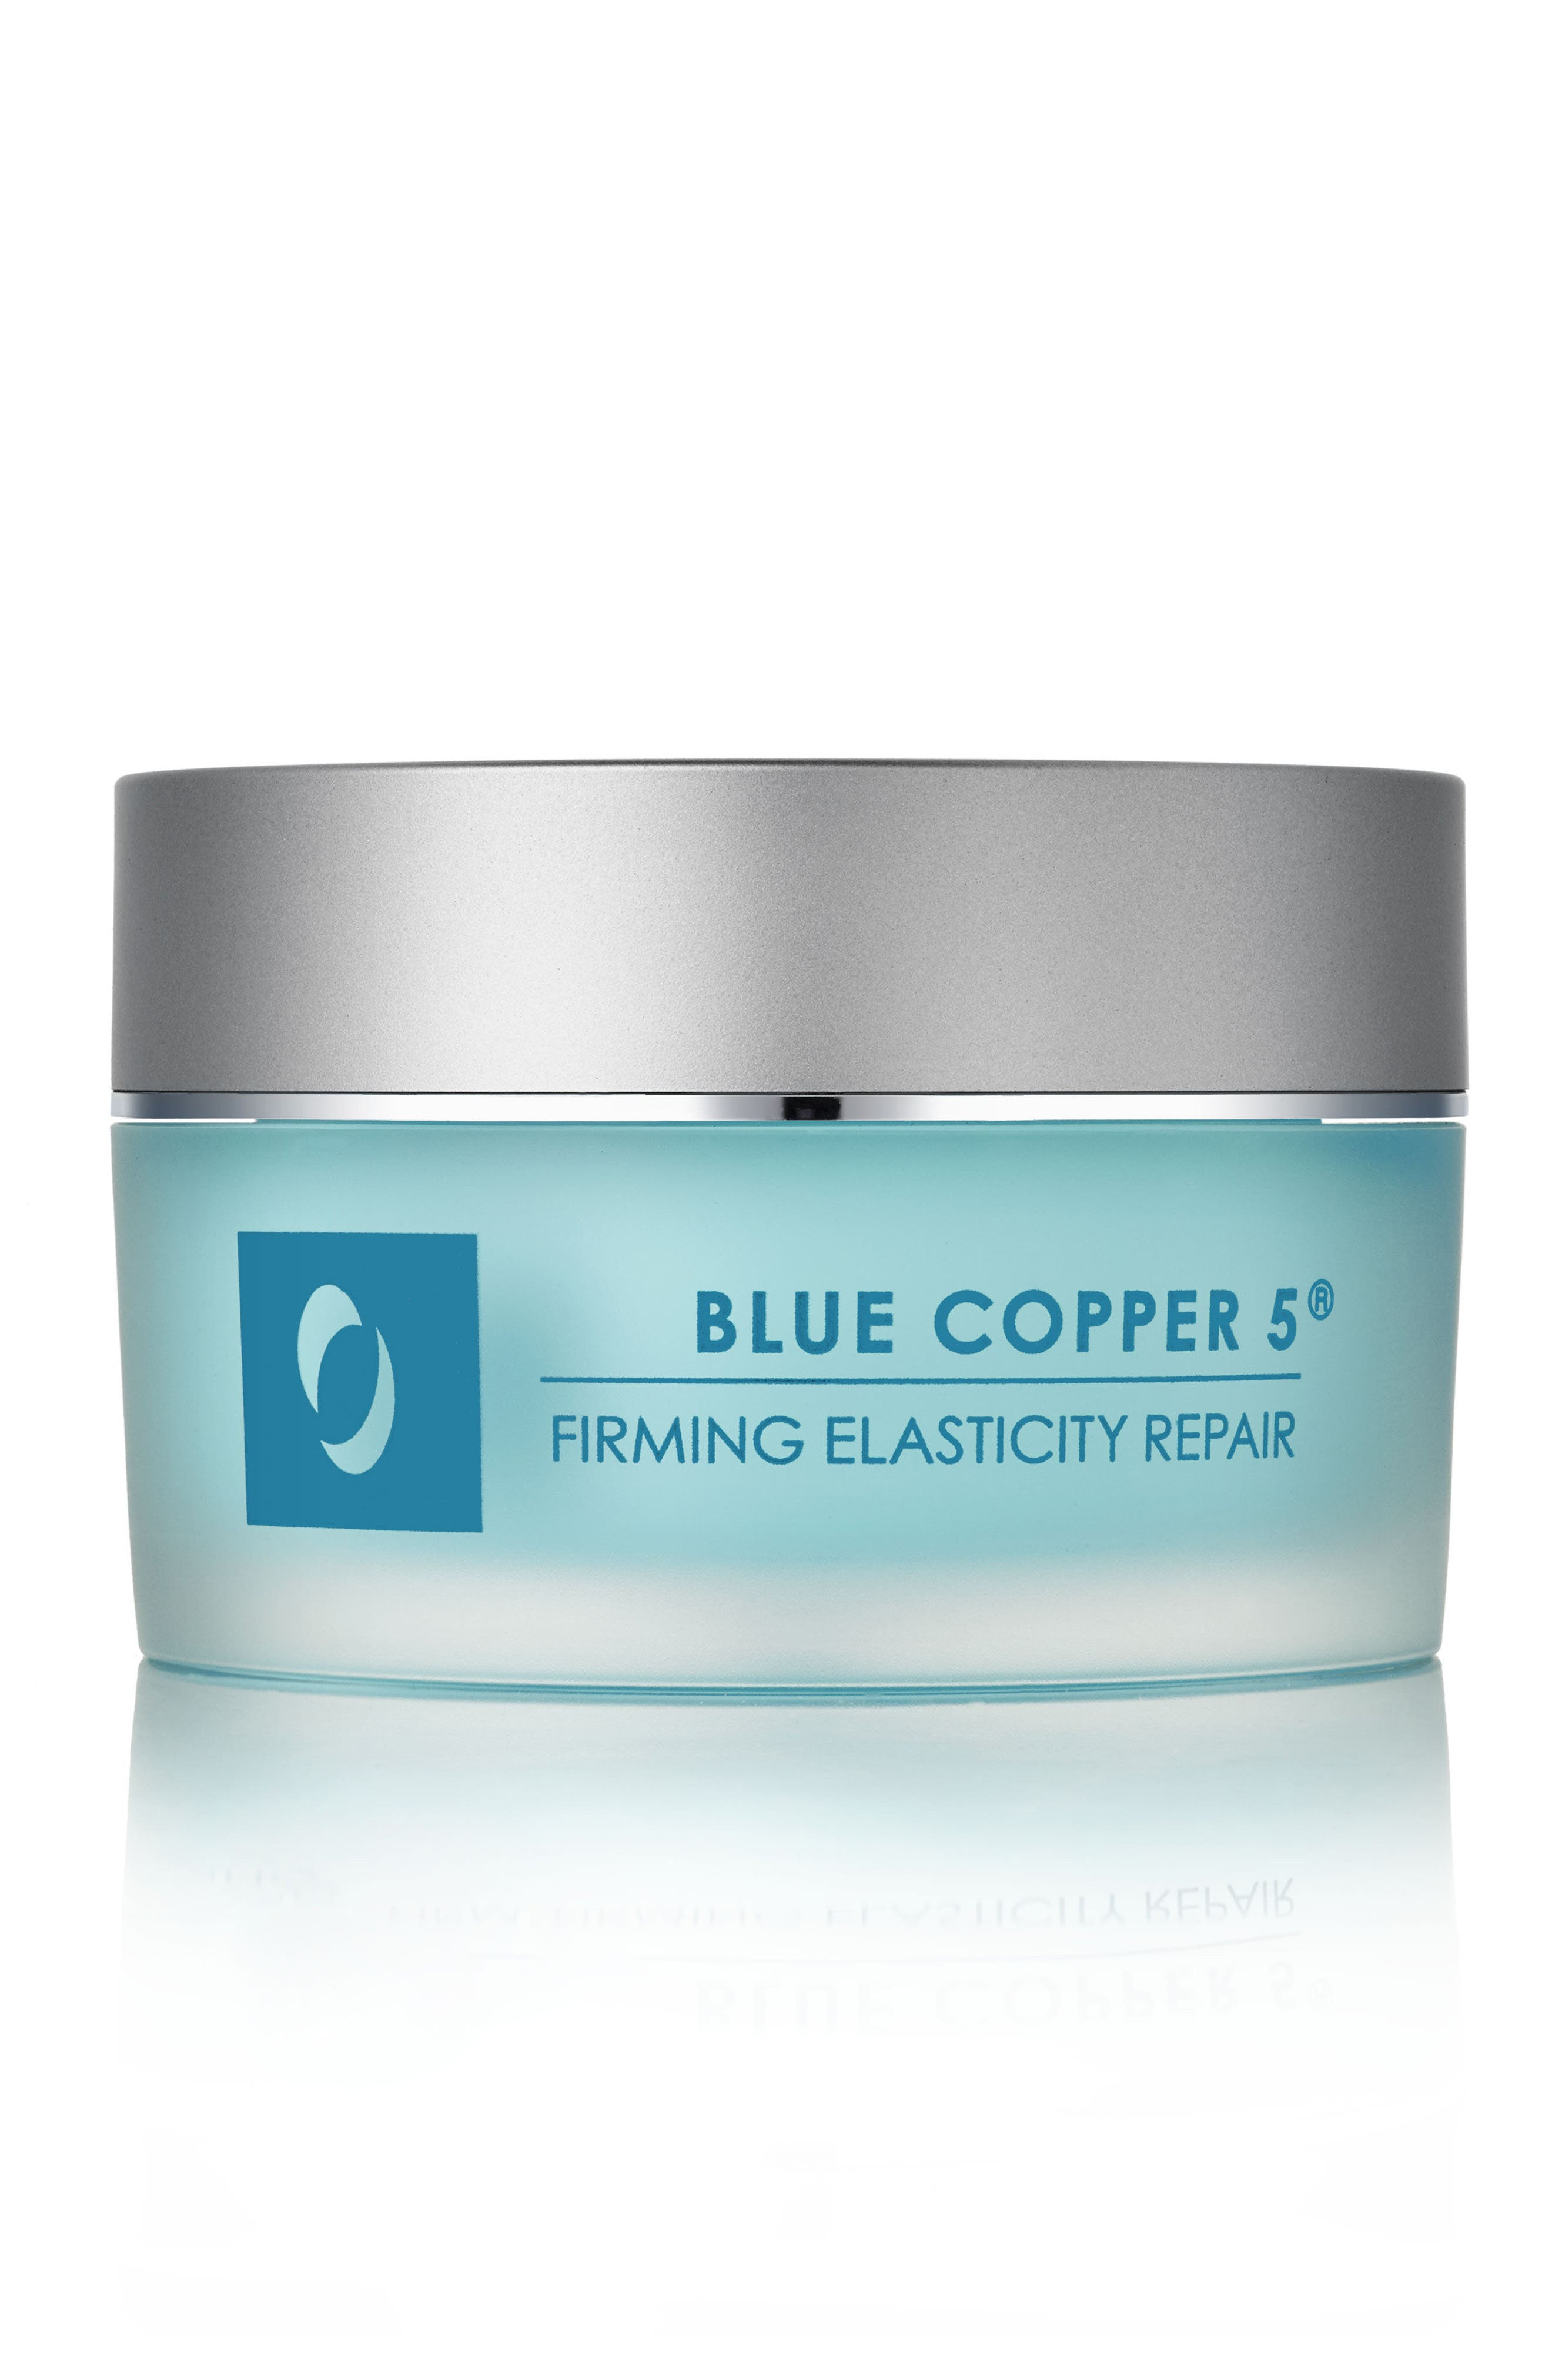 Blue Copper 5 Firming Elasticity Repair,                         Main,                         color, NO COLOR